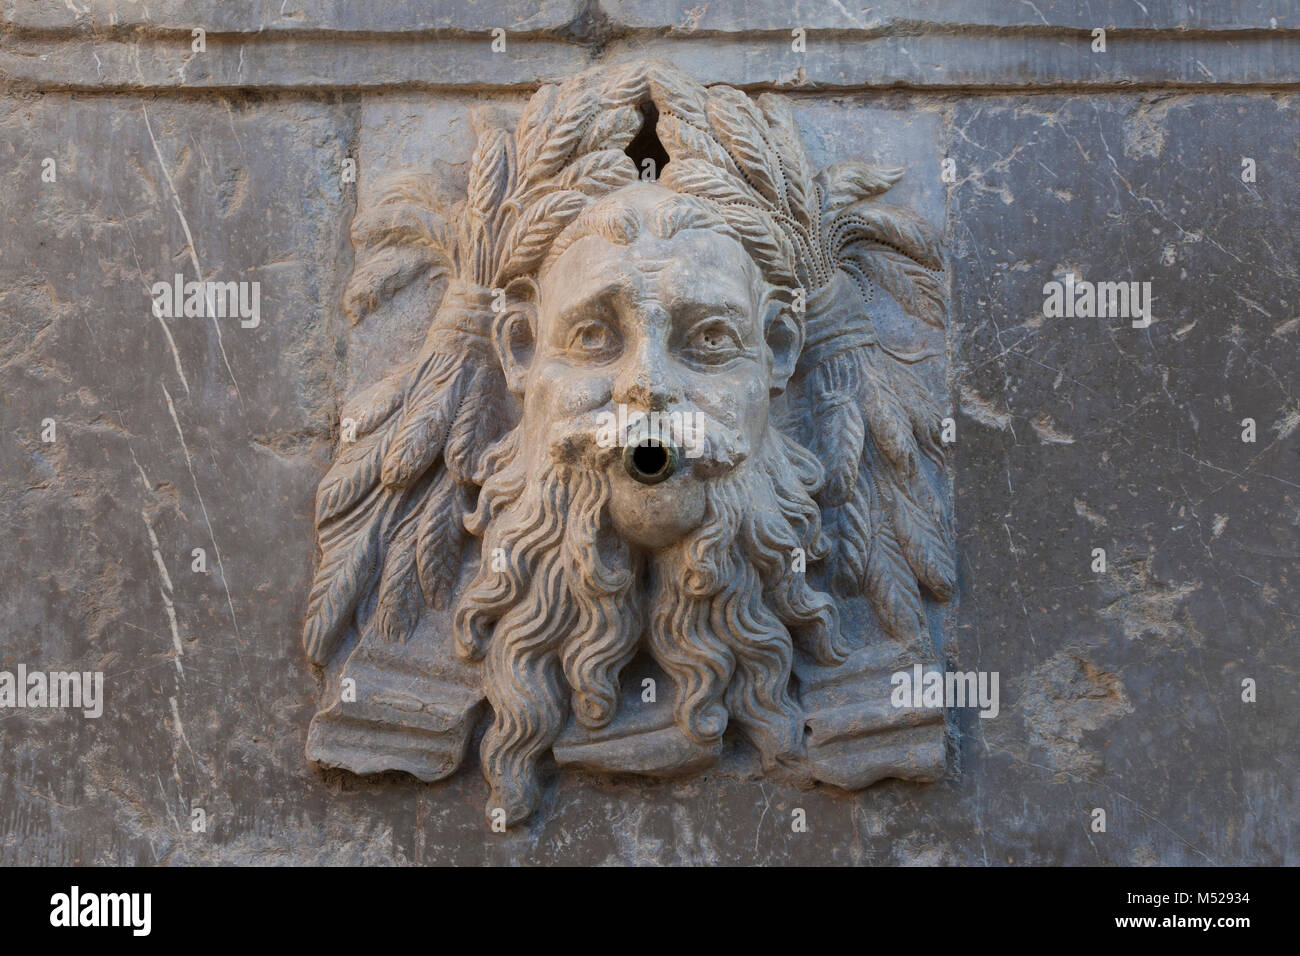 Granada, Spain: Figurehead on the fountain of Charles V's Pillar at the Alhambra Palace and Fortress. The three - Stock Image